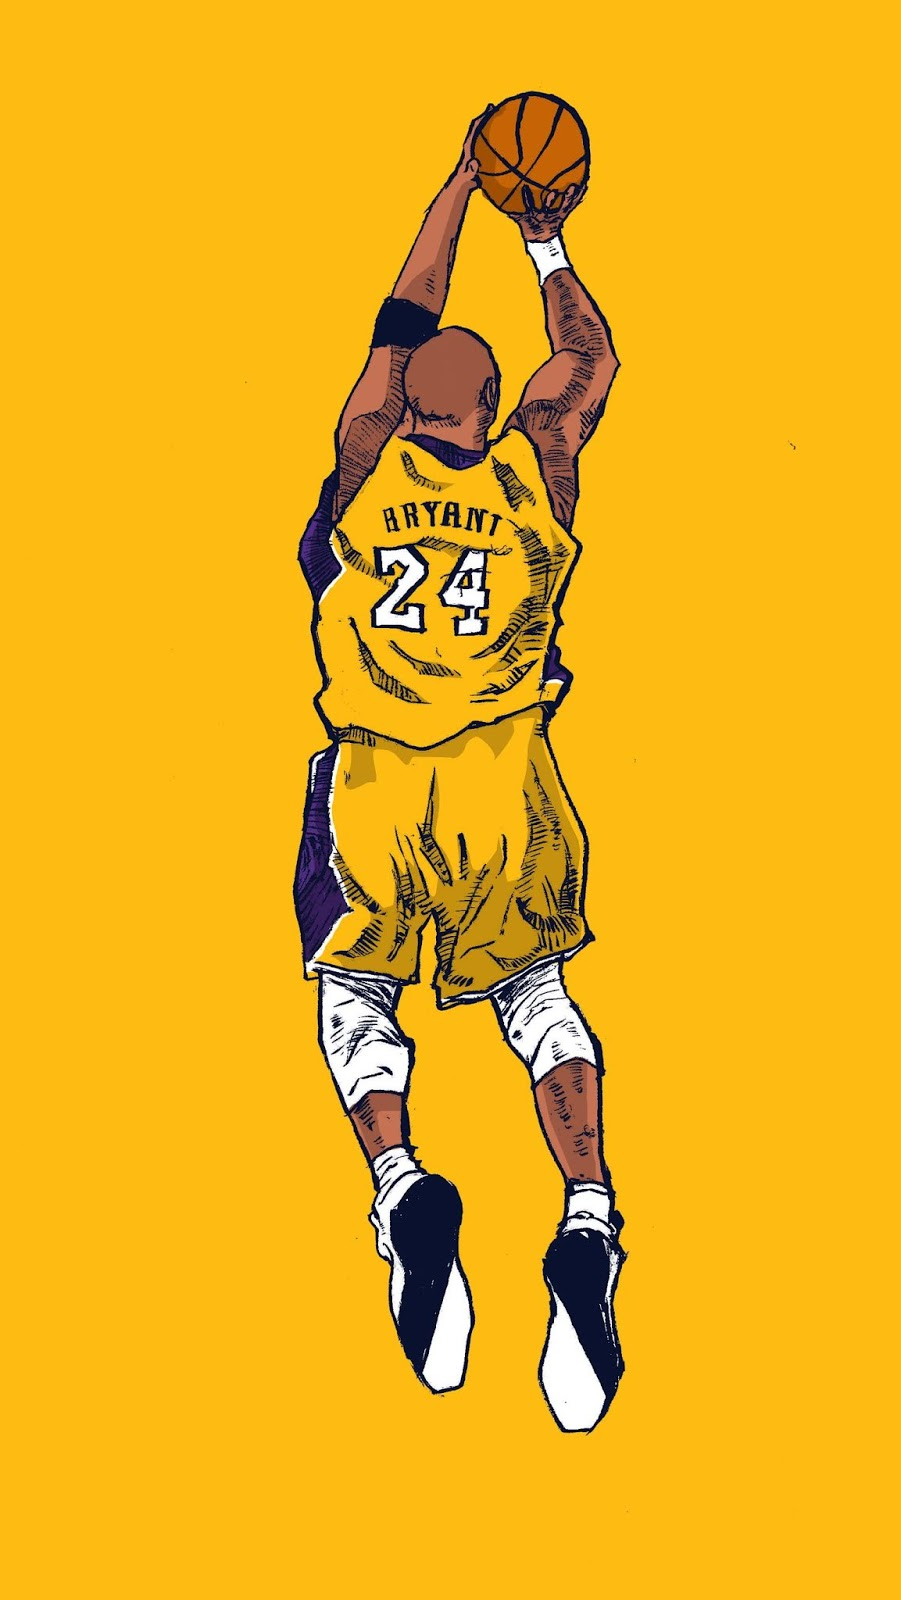 Kobe Bryant Black Mamba Wallpaper Yellow